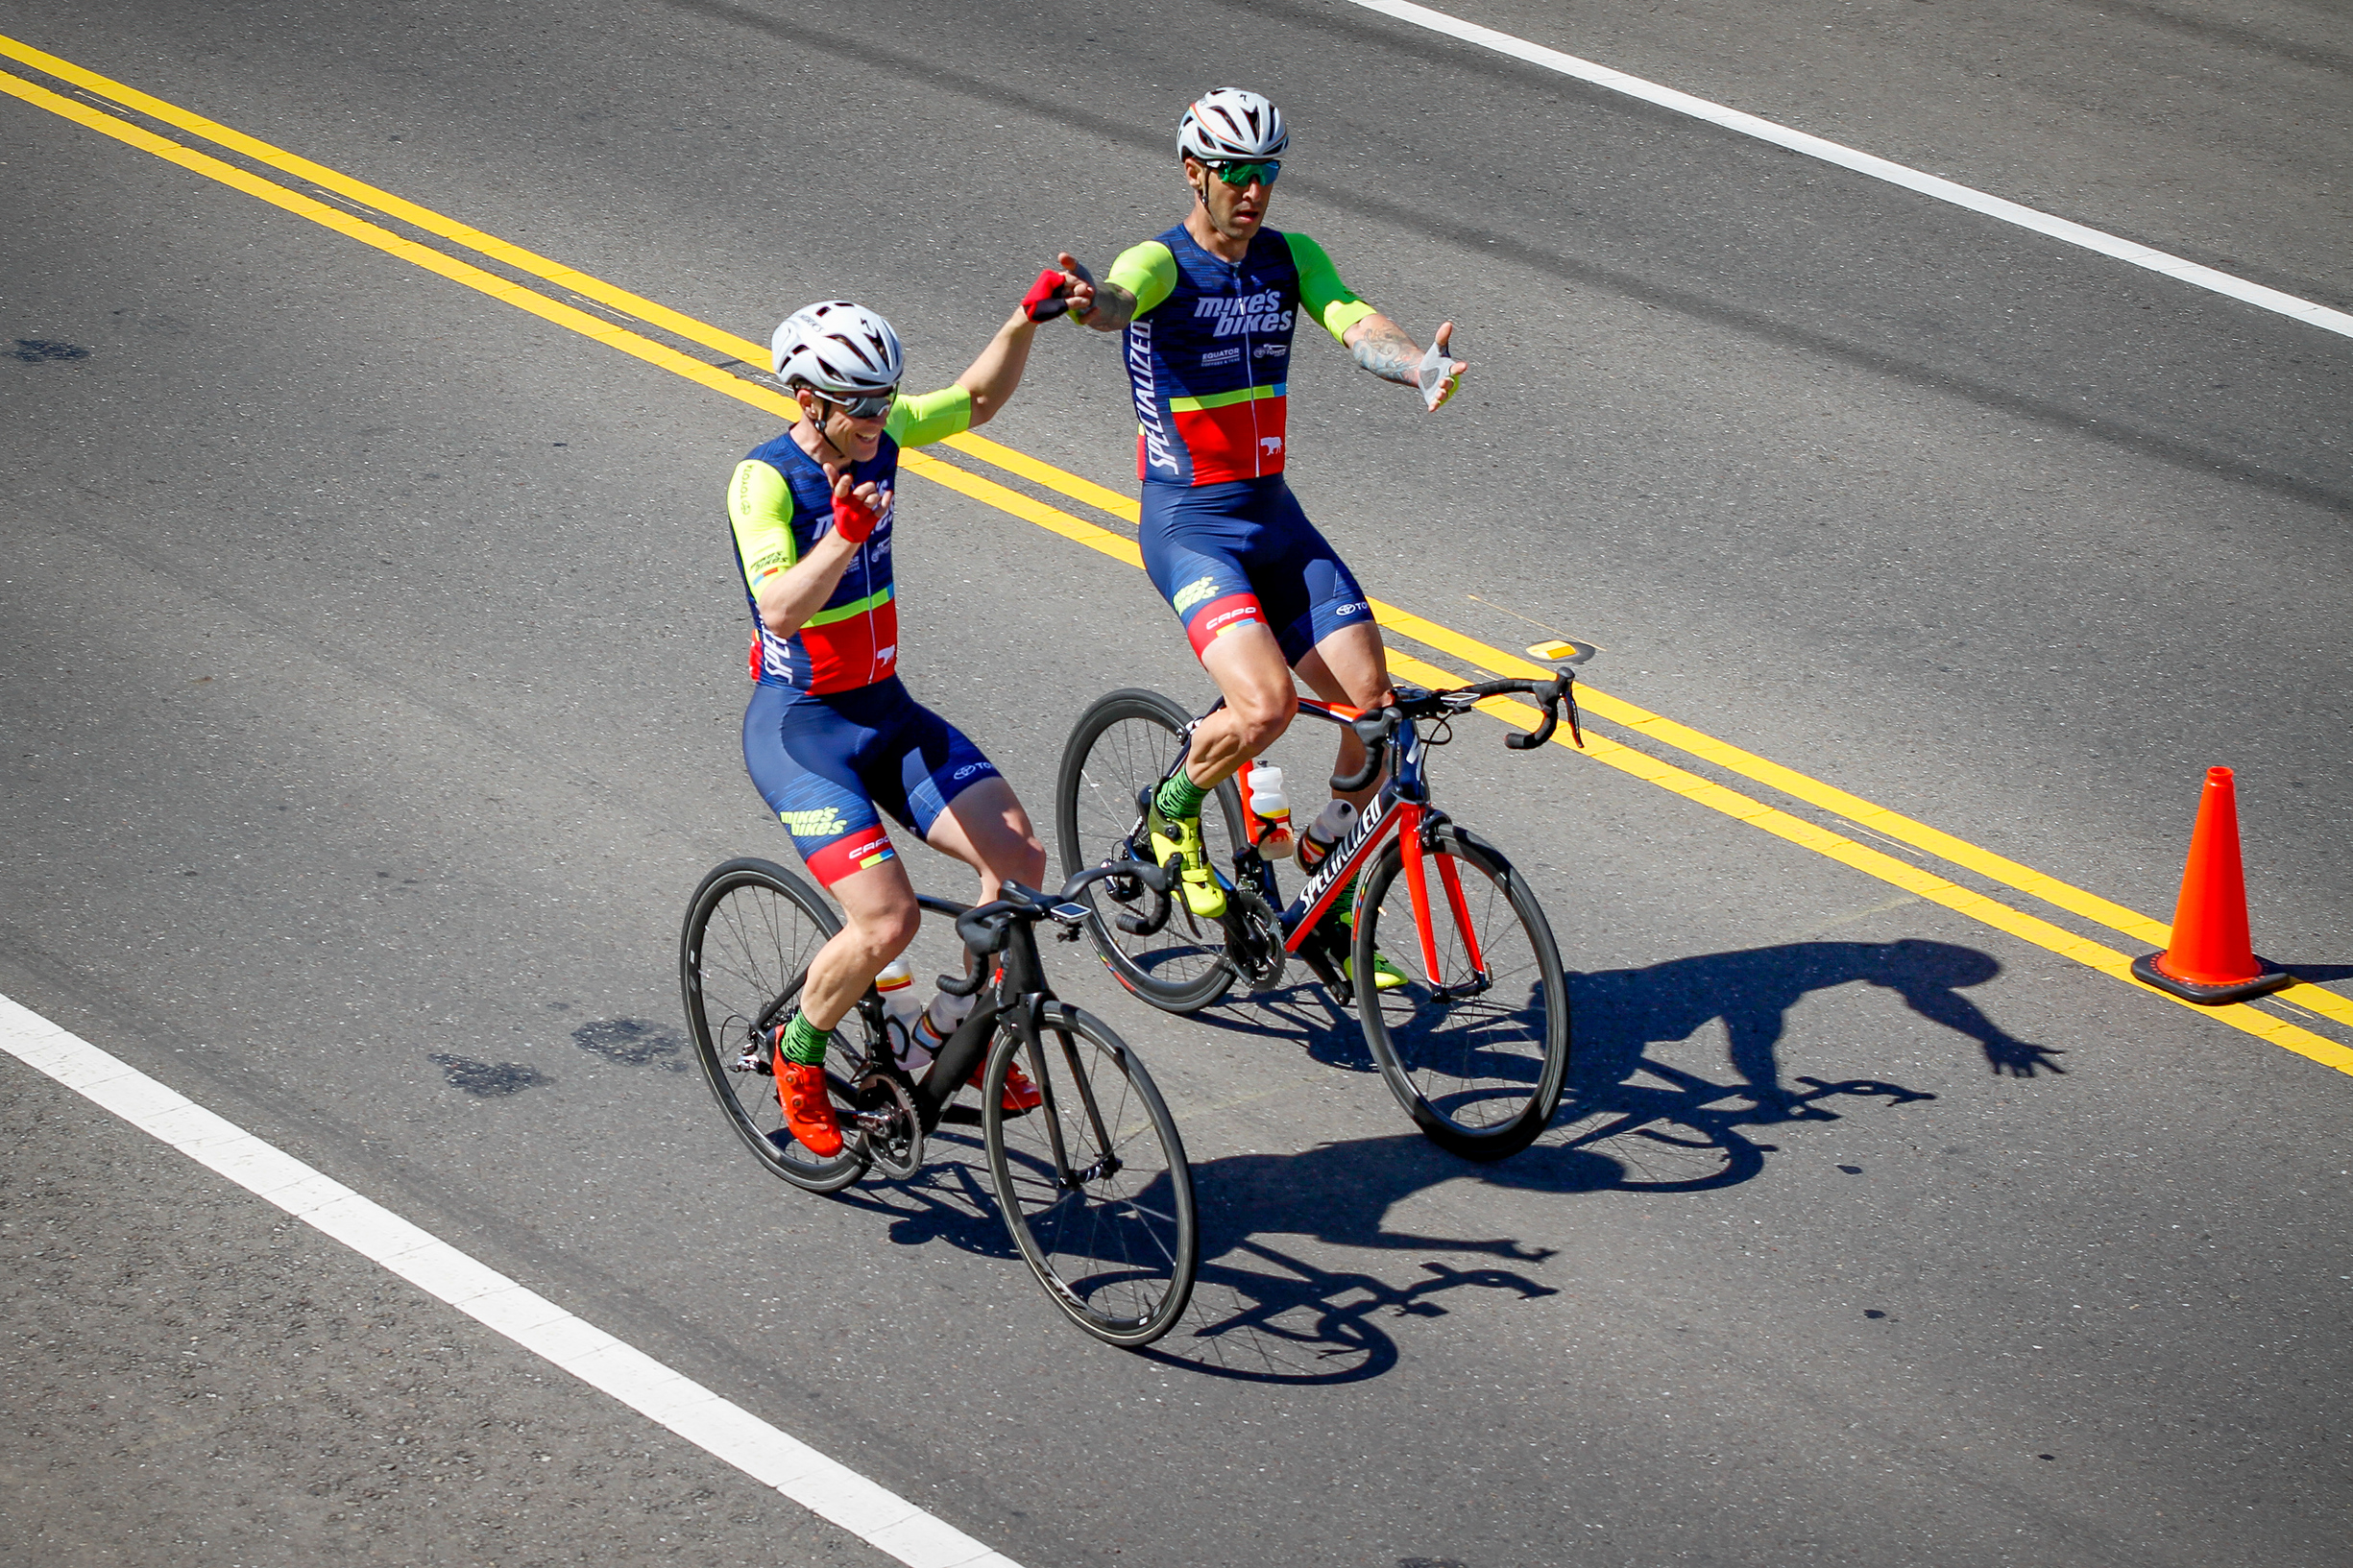 Dana Williams & Rob Amatelli Finish 1-2 at the 2017 Wente Vineyards Road Race